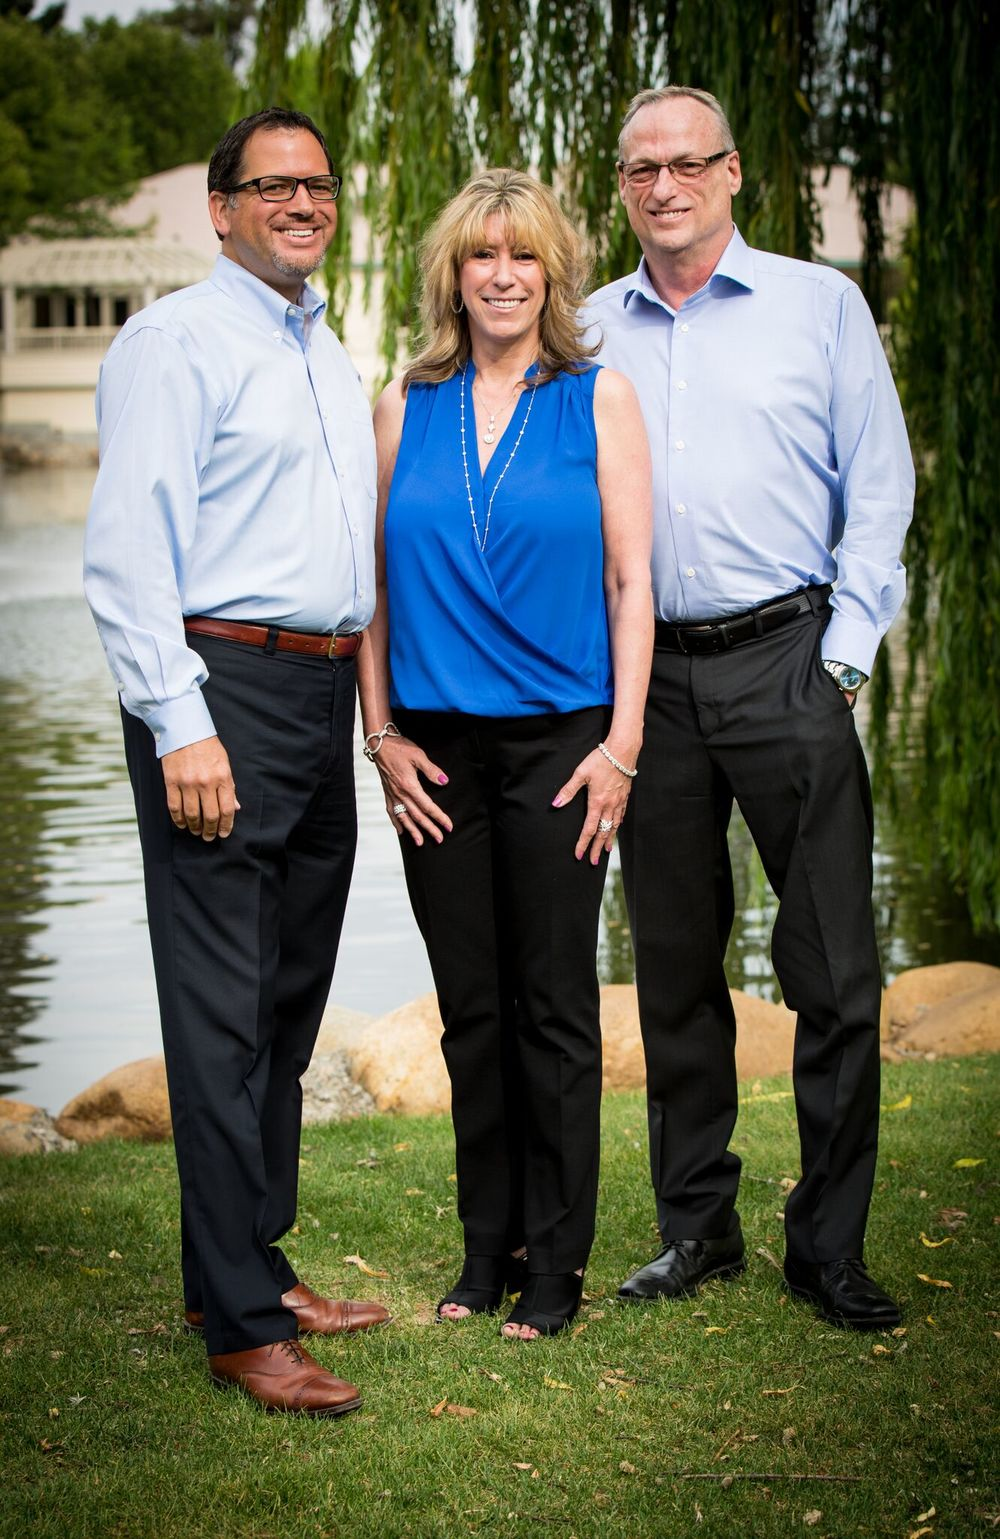 Business partners David Fitts, Julie Kahn-Crowder, and Ron Shelly each bring decades of jewelry experience to DFJ.